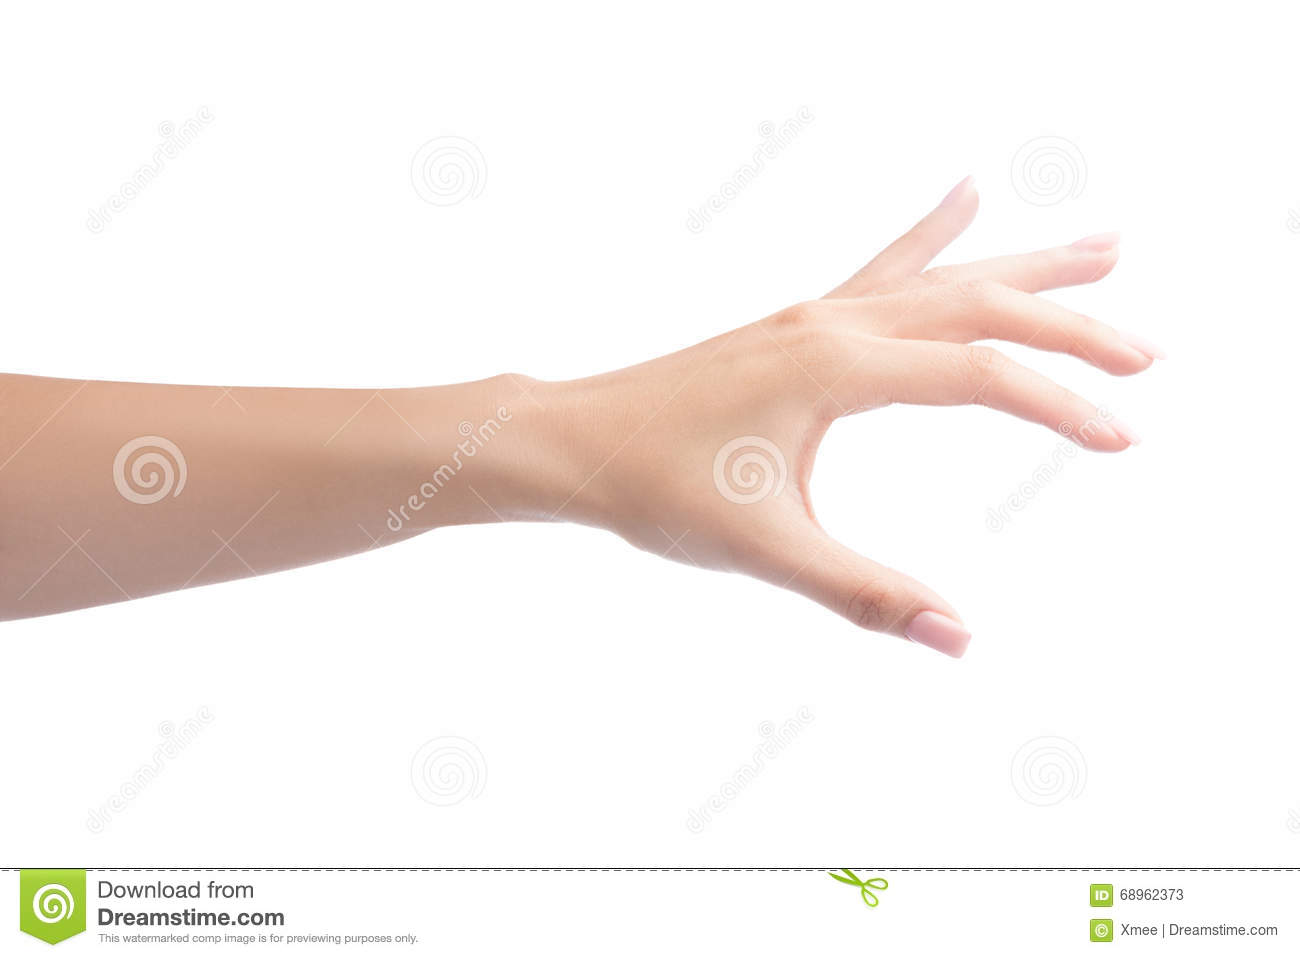 Woman hand holding object